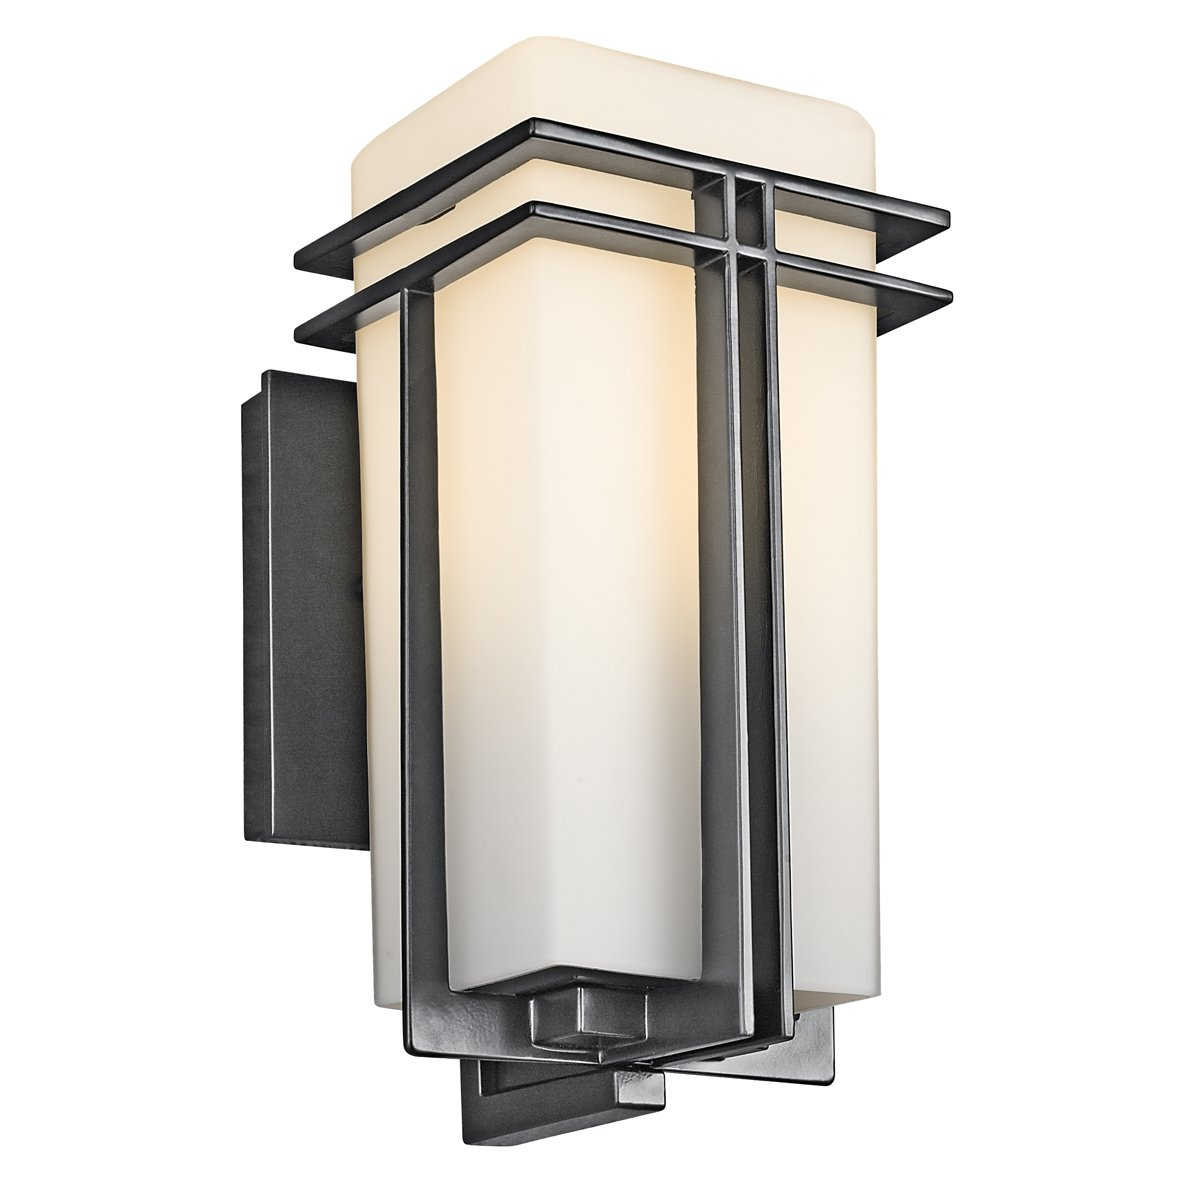 Kichler 49200BK One Light Outdoor Wall Mount by Kichler Lighting